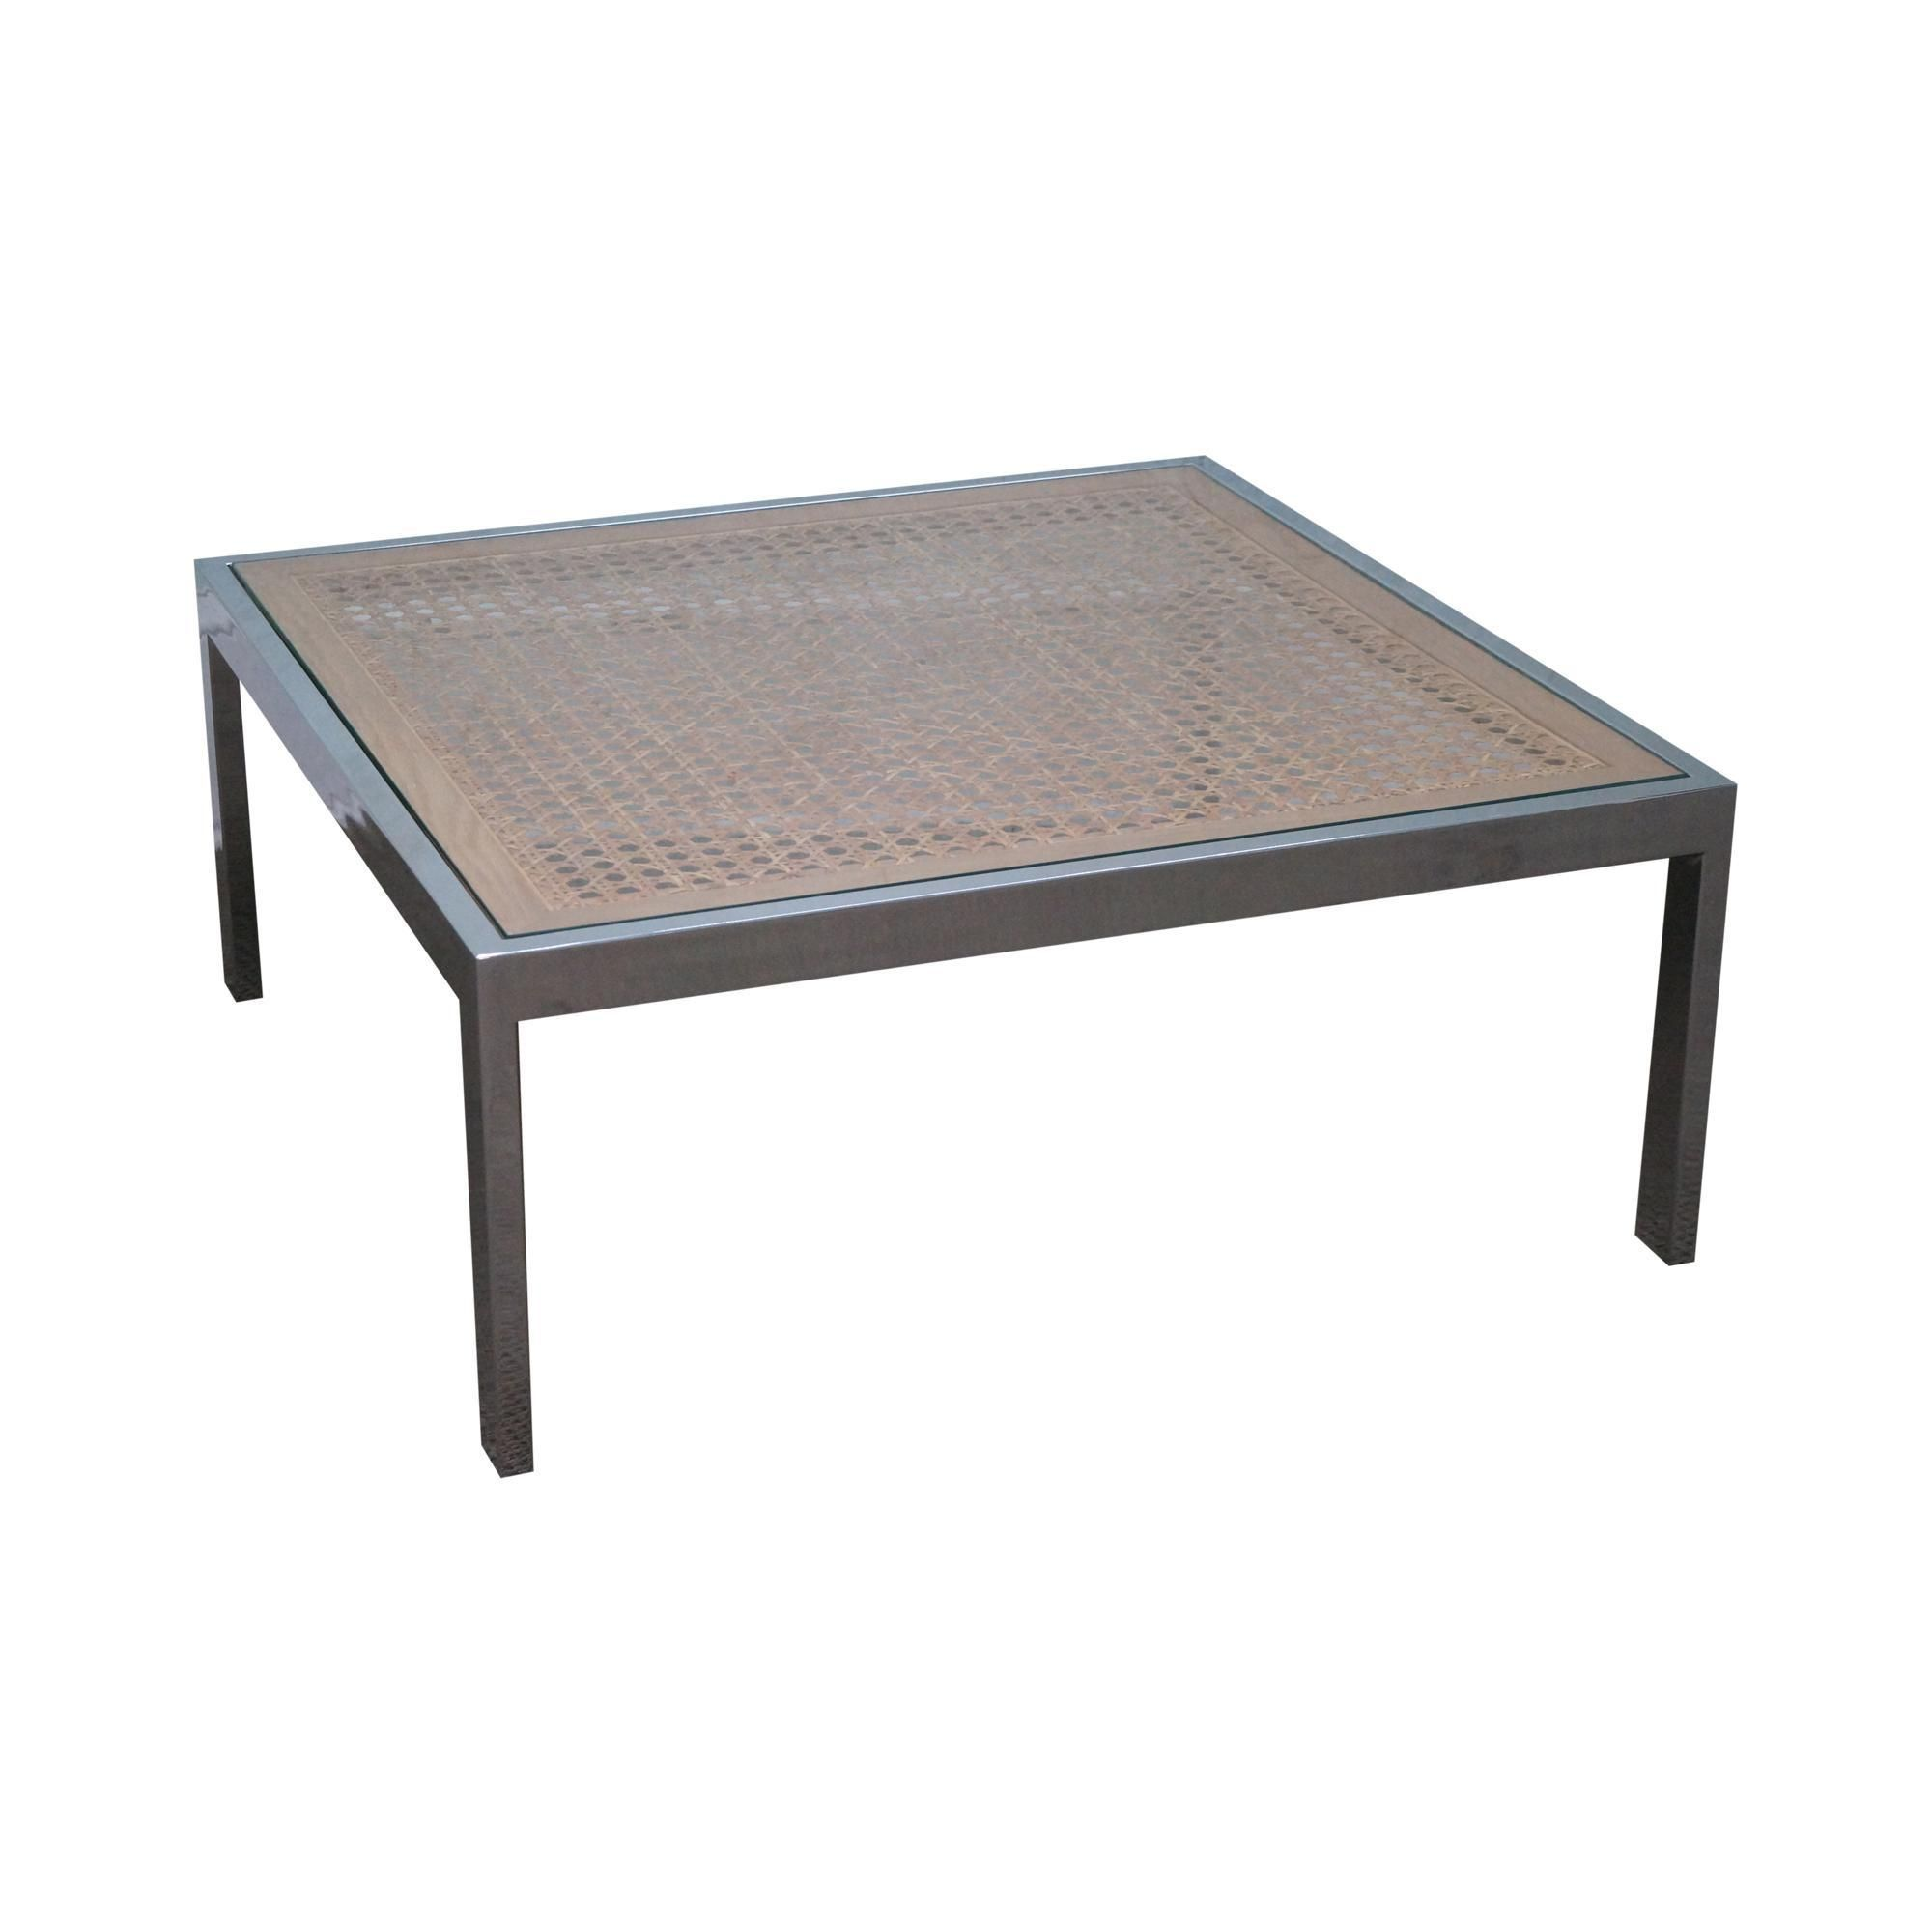 Milo Baughman Chrome & Cane Glass Top Square Coffee Table